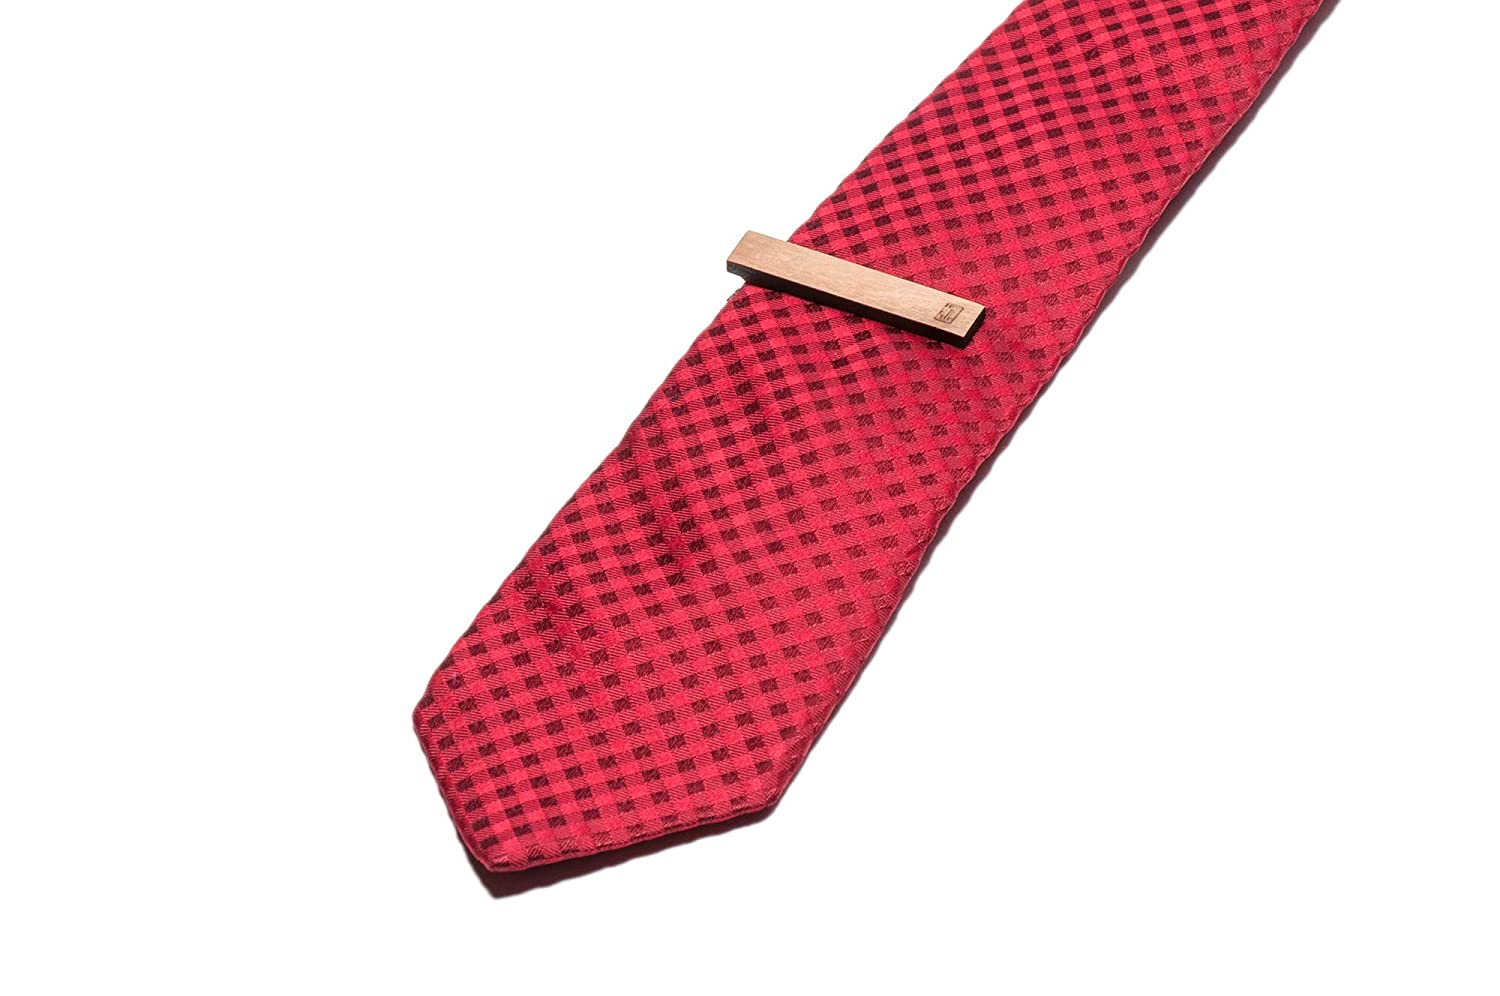 Wooden Accessories Company Wooden Tie Clips with Laser Engraved Advent Calender Design Cherry Wood Tie Bar Engraved in The USA